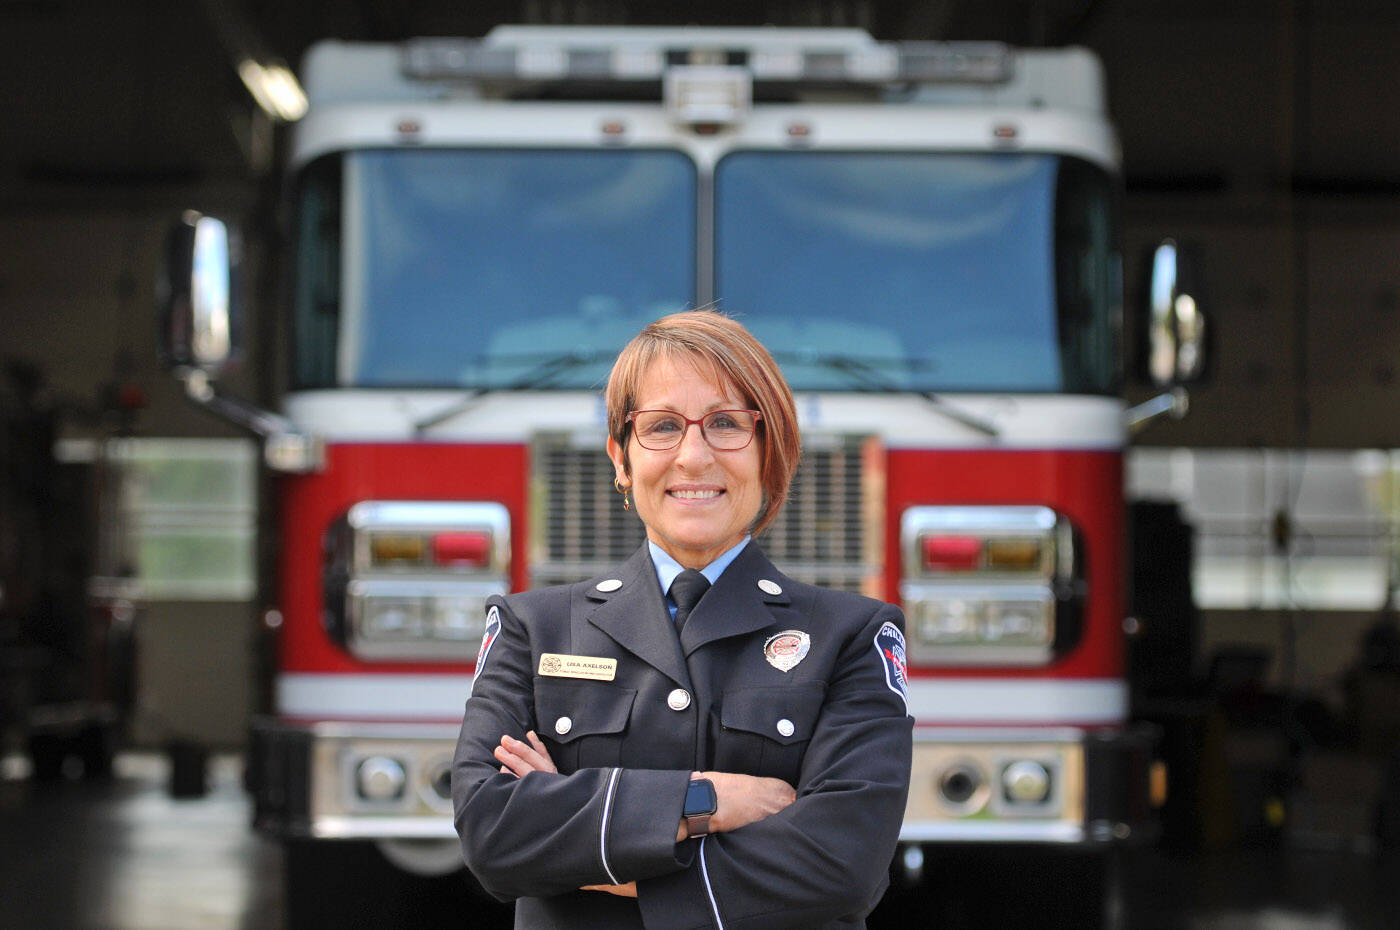 Lt. Lisa Axelson was named Public Educator of the Year by the Fire Prevention Officers' Association of B.C. She is picture here at Hall No. 1 on Friday, Oct. 1, 2021. (Jenna Hauck/ Chilliwack Progress)